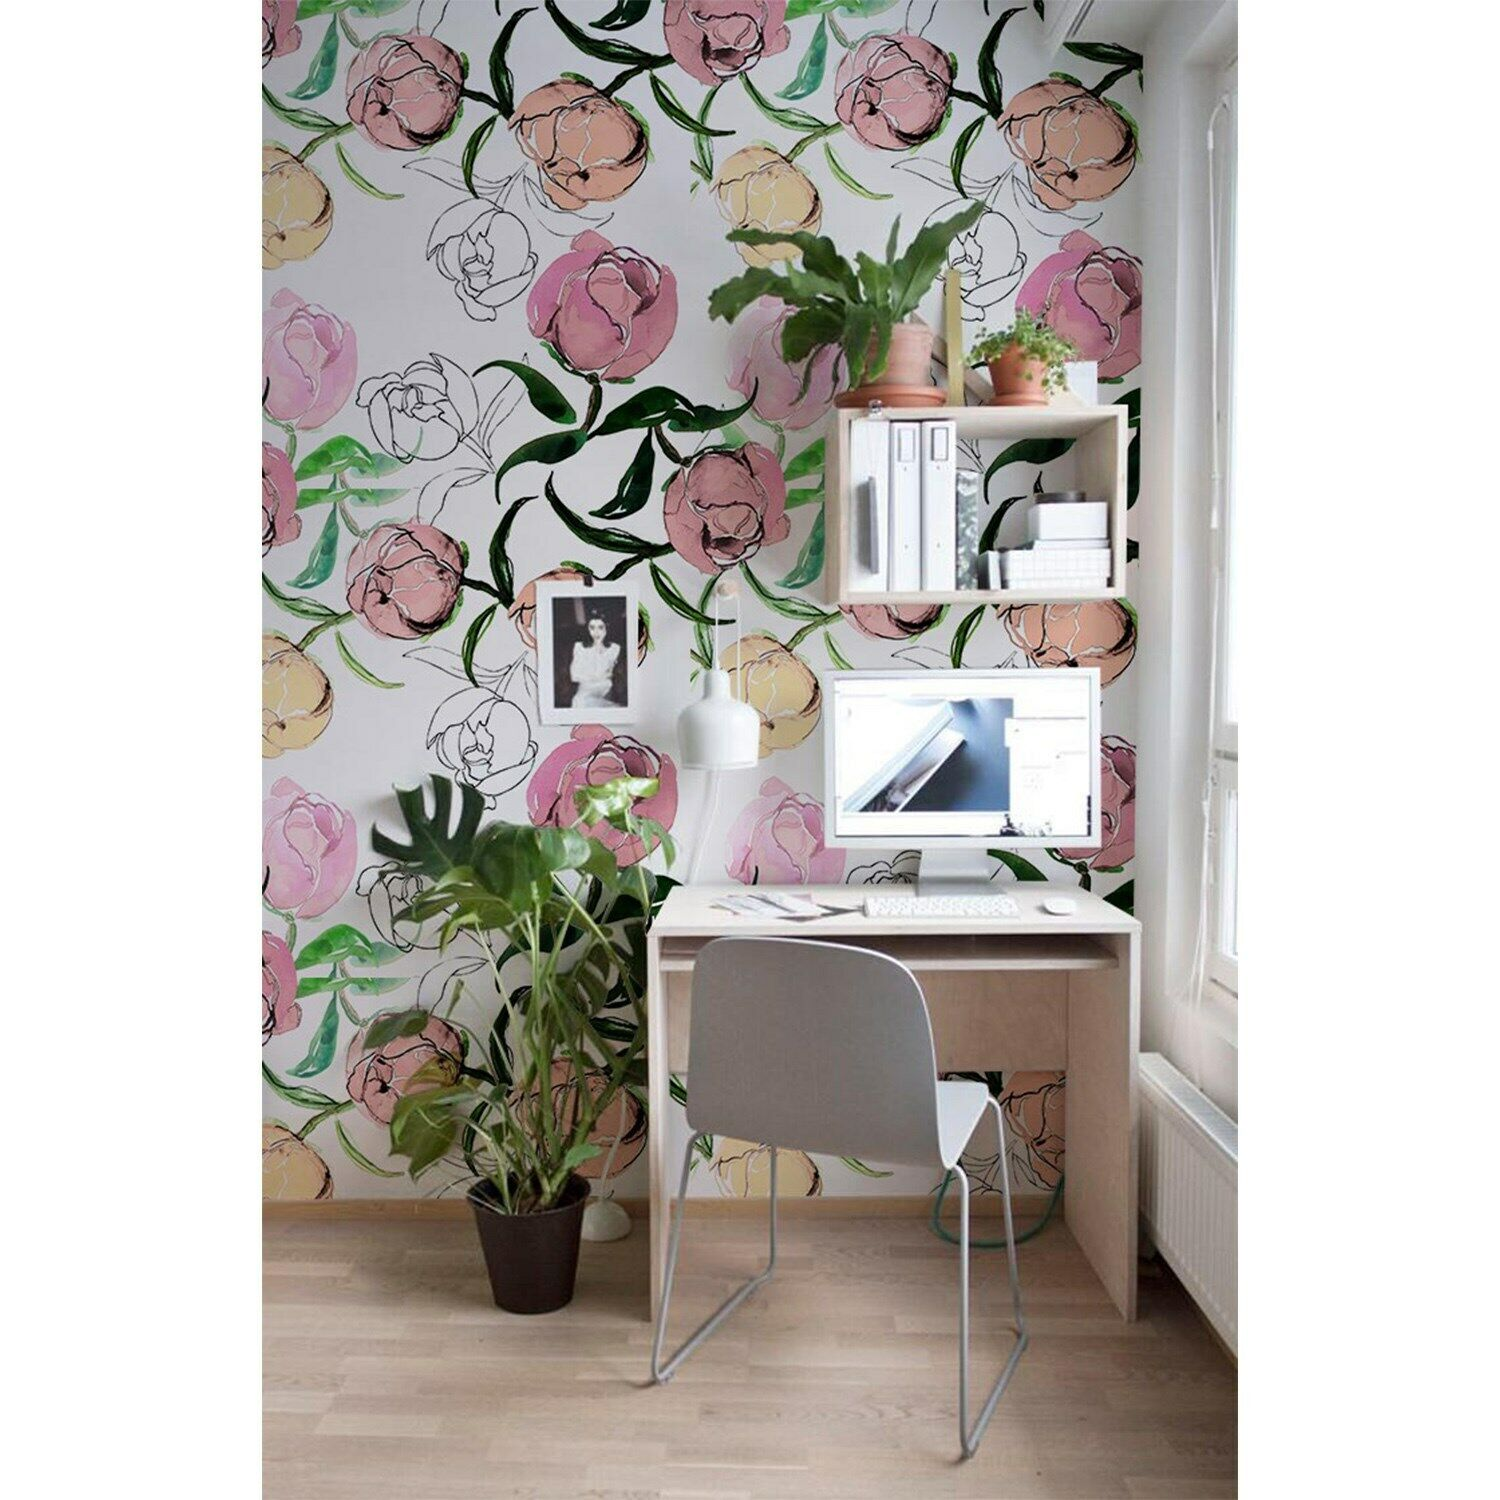 Non-Woven wallpaper Peony Buds Floral Flowers Peonies Traditional art Mural